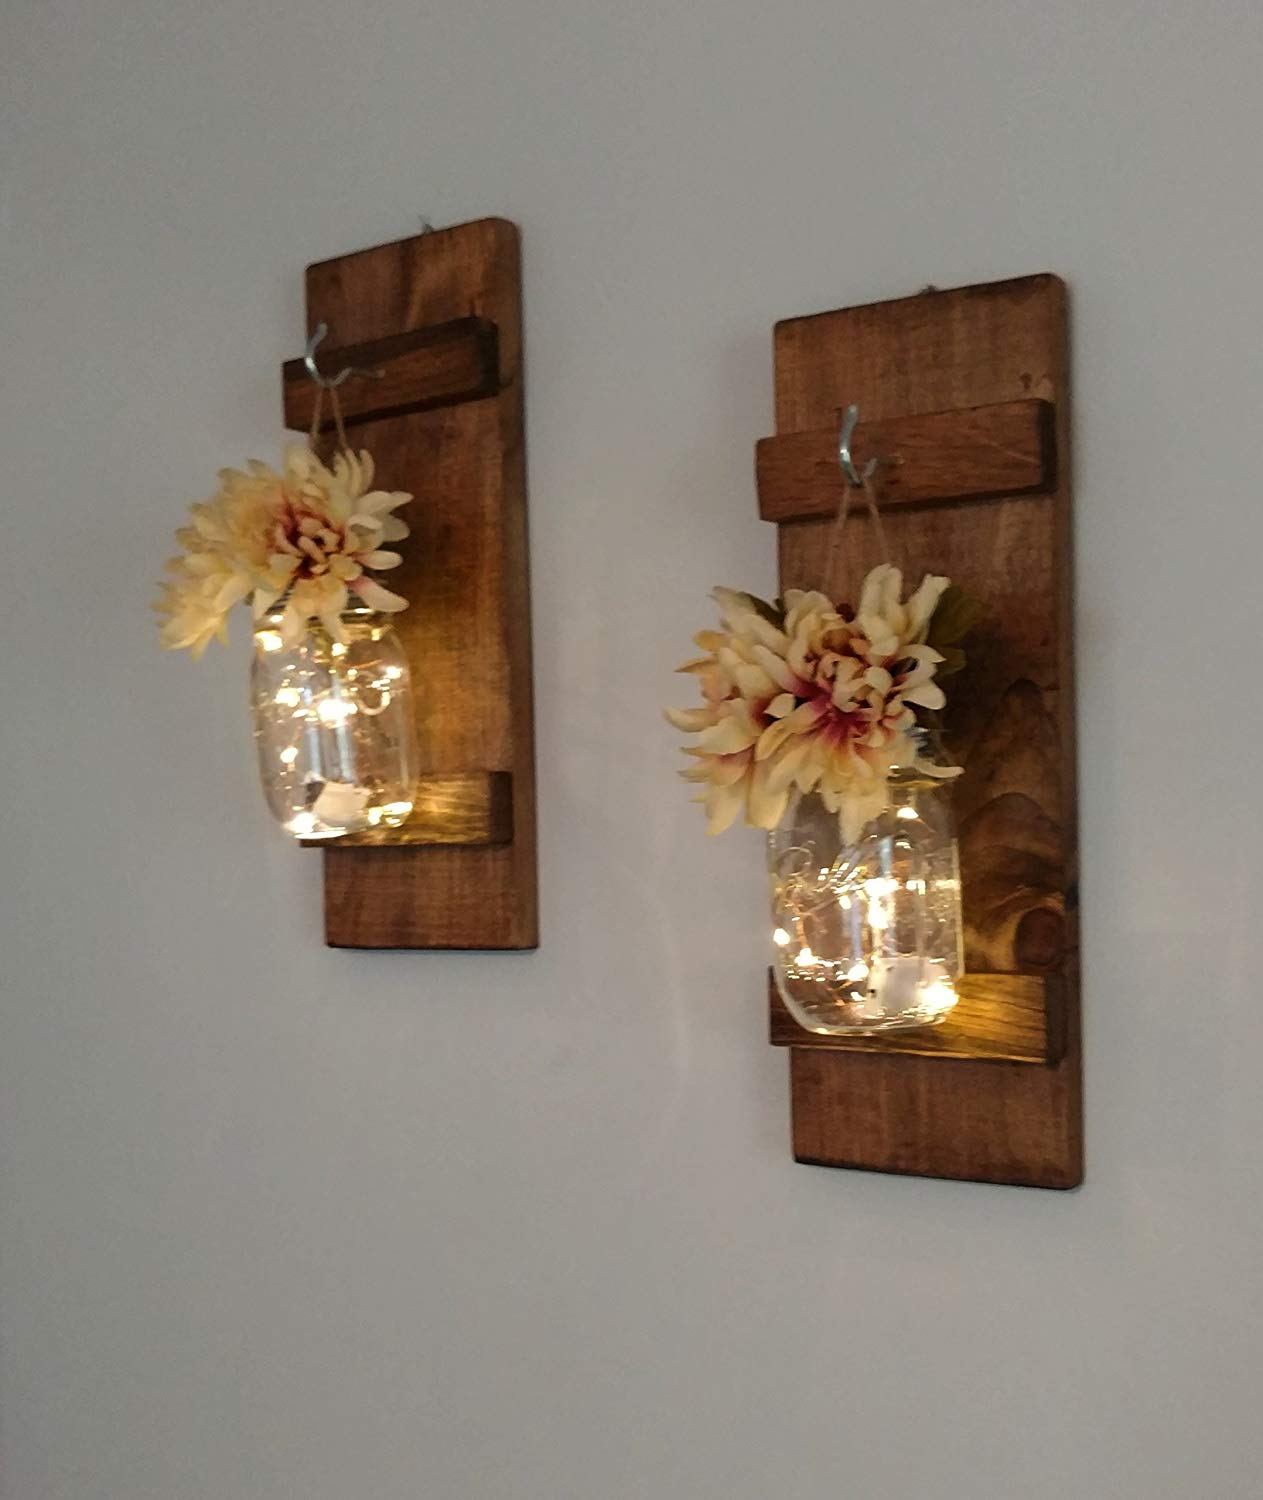 Office Wall Sconces Buy Set Of 2 Decorative Wall Sconces Hanging Candle Holders